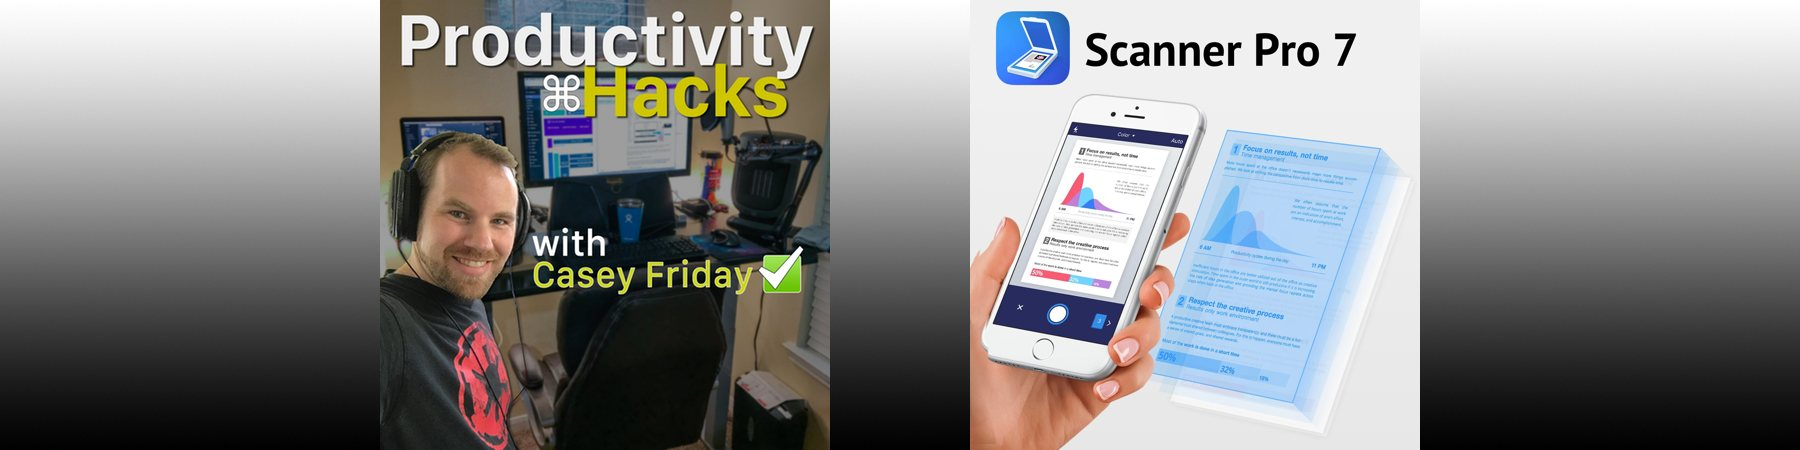 Productivity Hacks - Episode 1 - ScannerPro 7